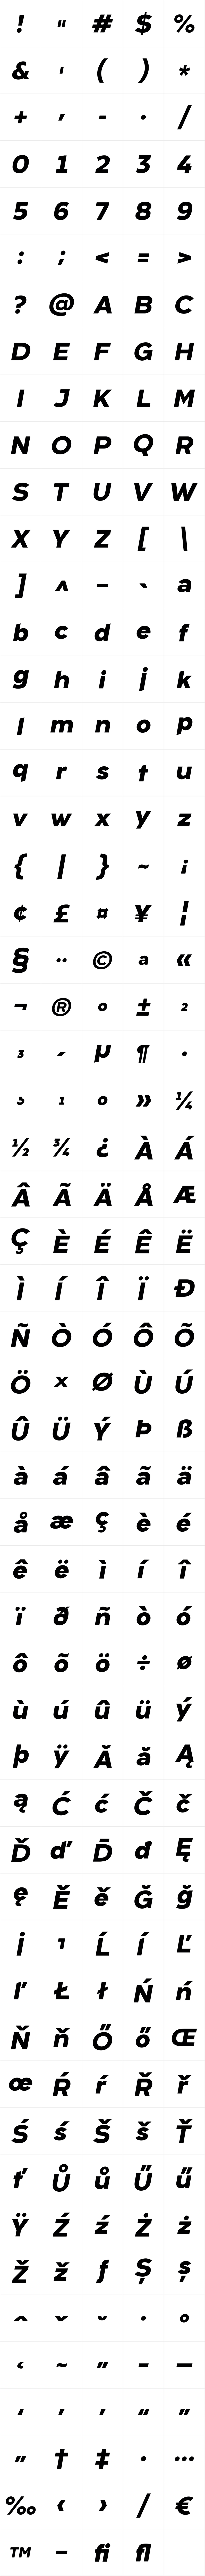 Arkibal Display Heavy Italic